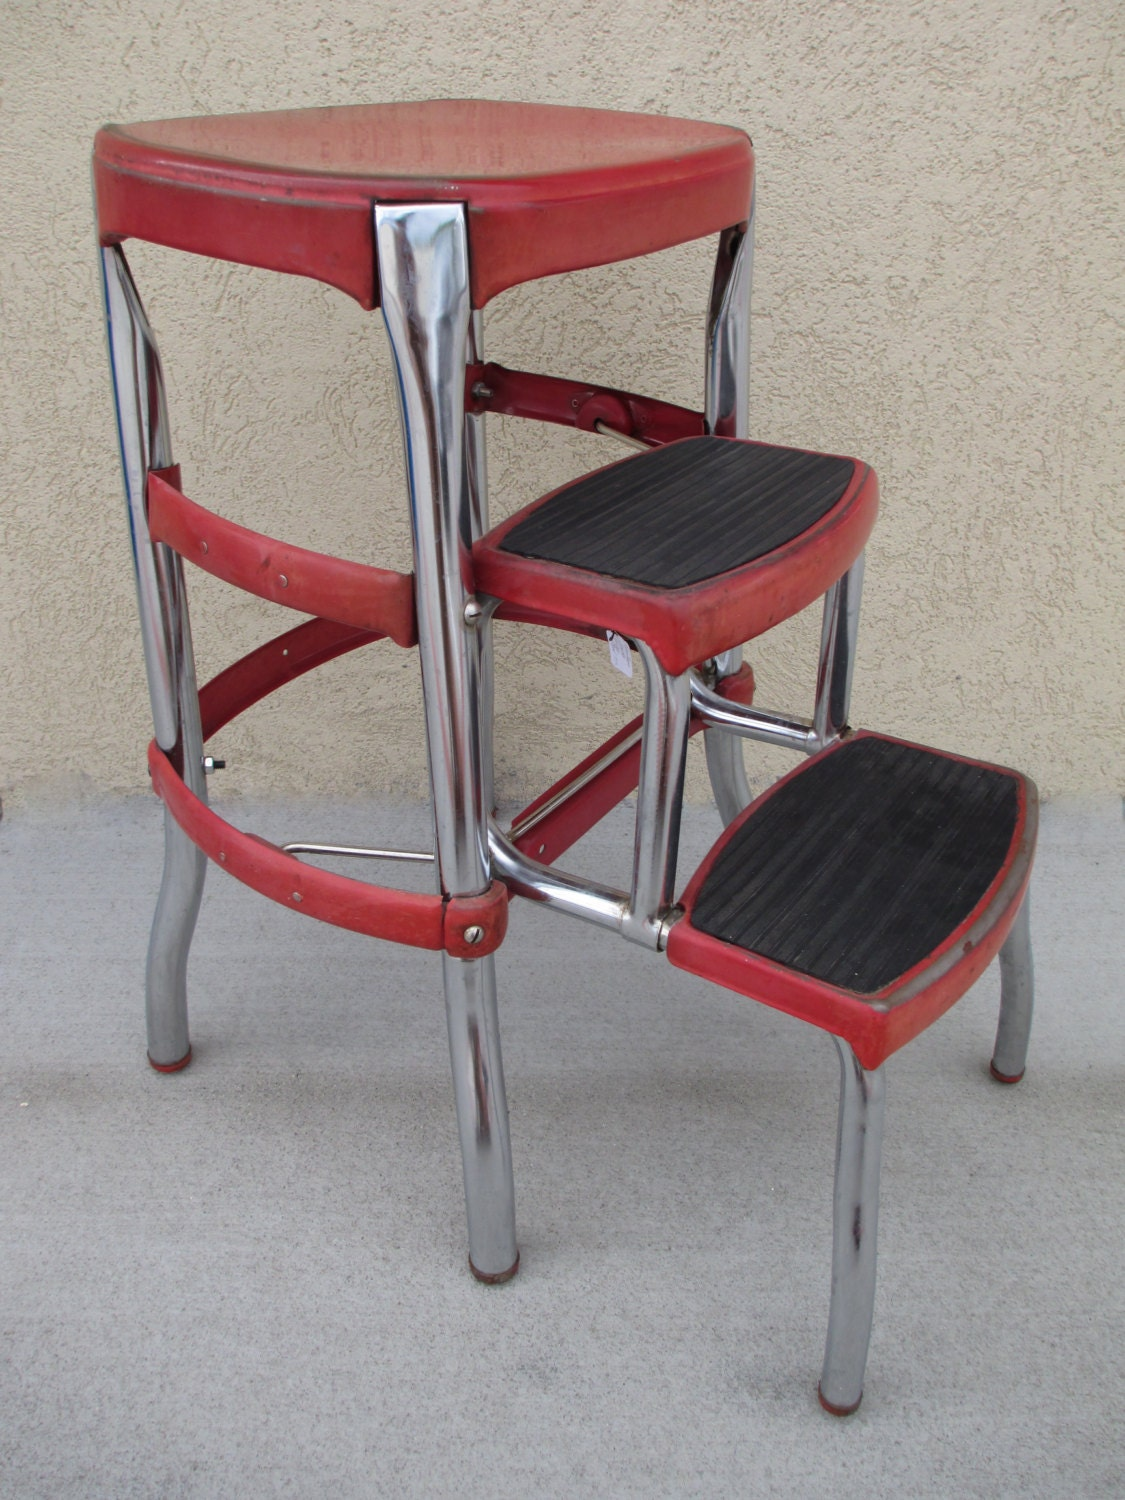 Step Stool Cosco Step Stool Vintage Step Stool Mid Century